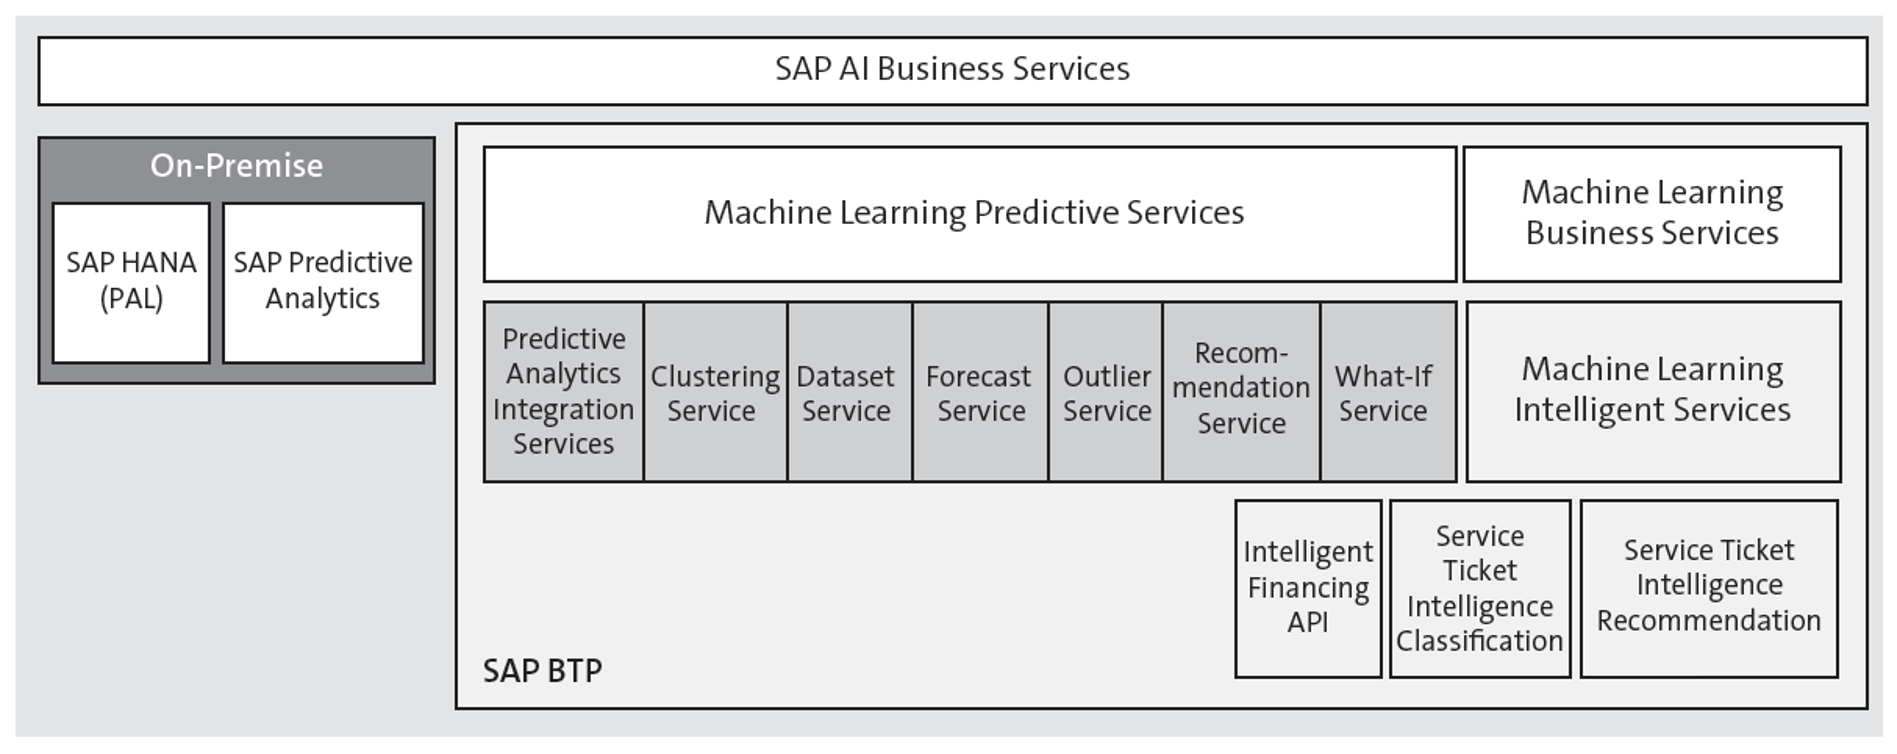 SAP's Machine Learning Components